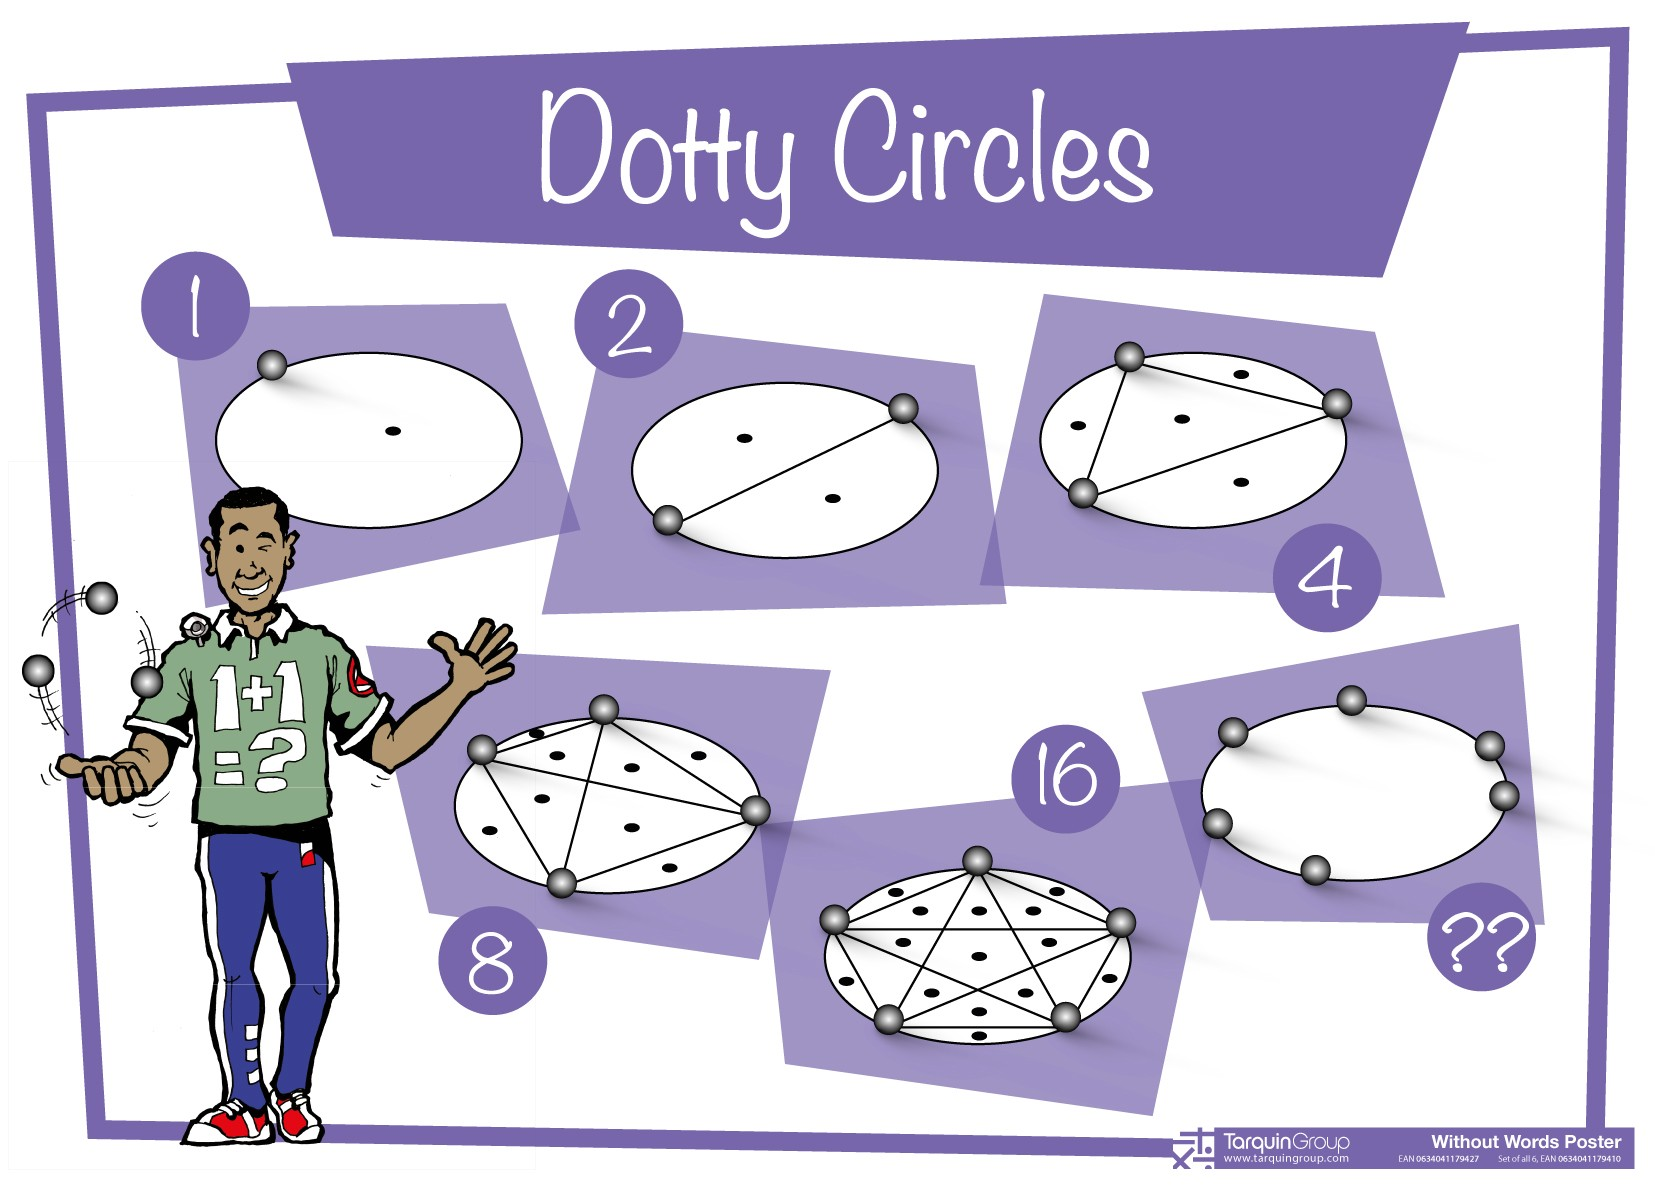 Dotty Circles Poster